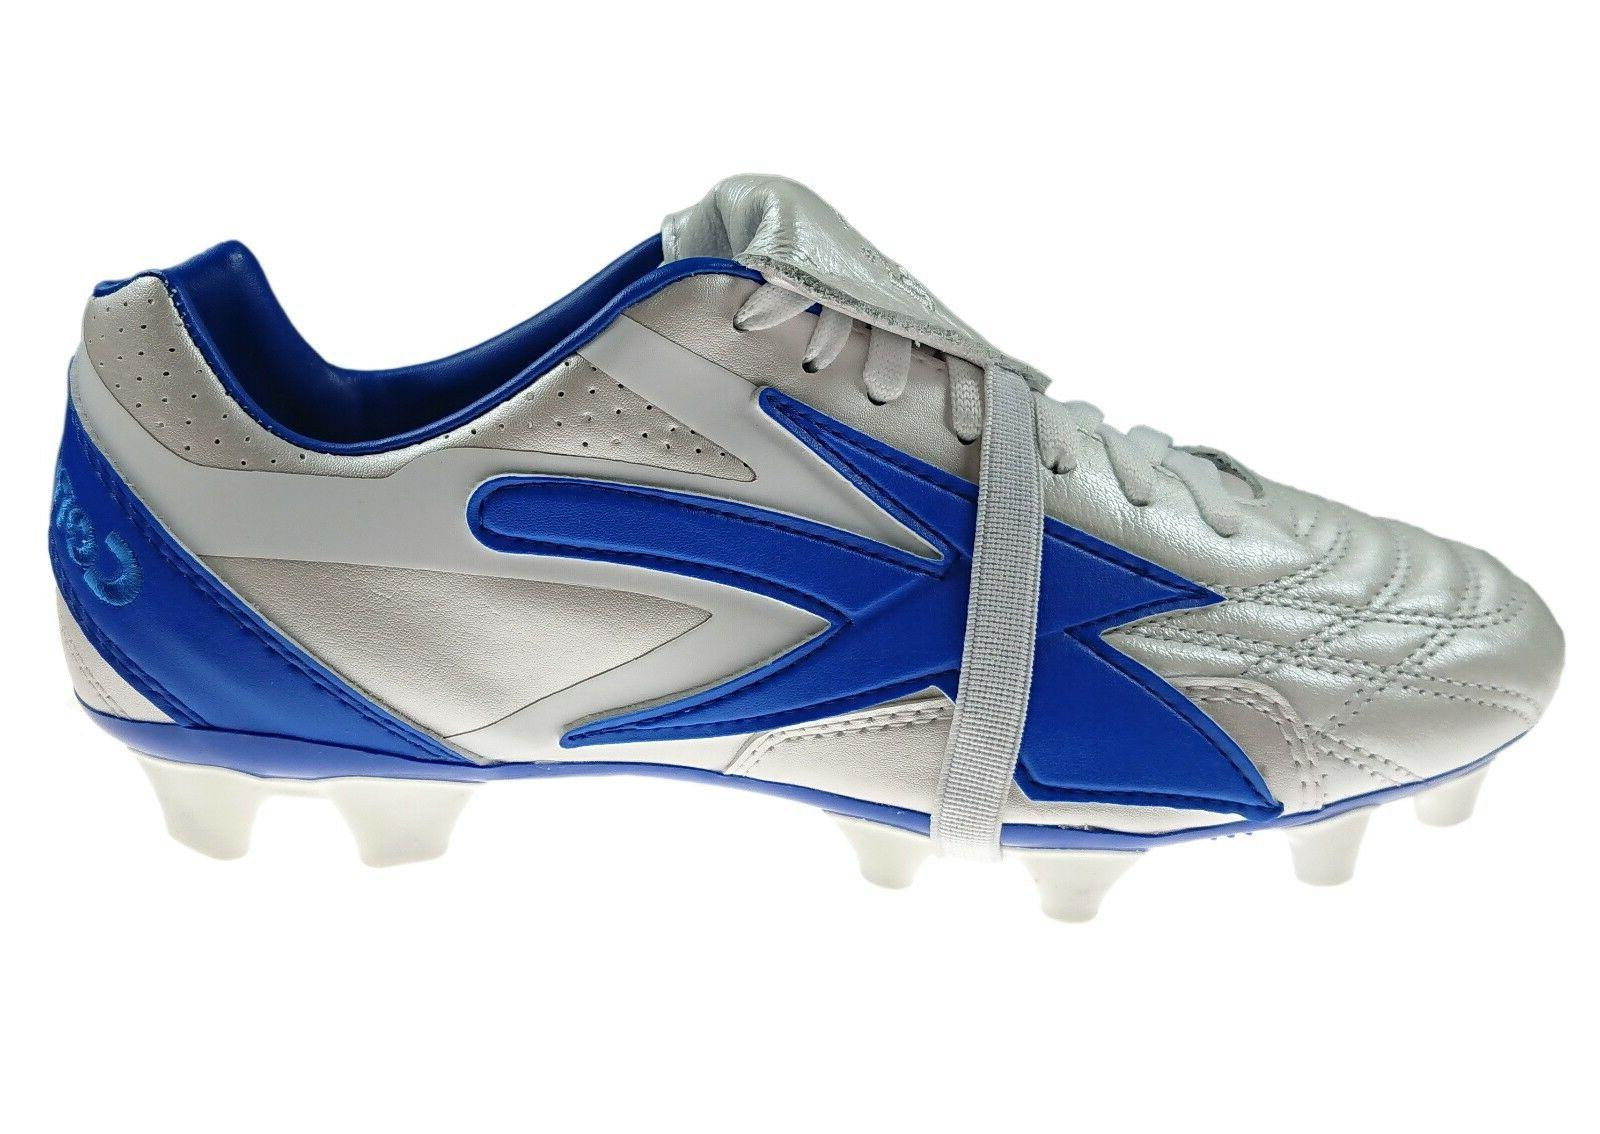 authentic soccer cleats style s160xa leather made